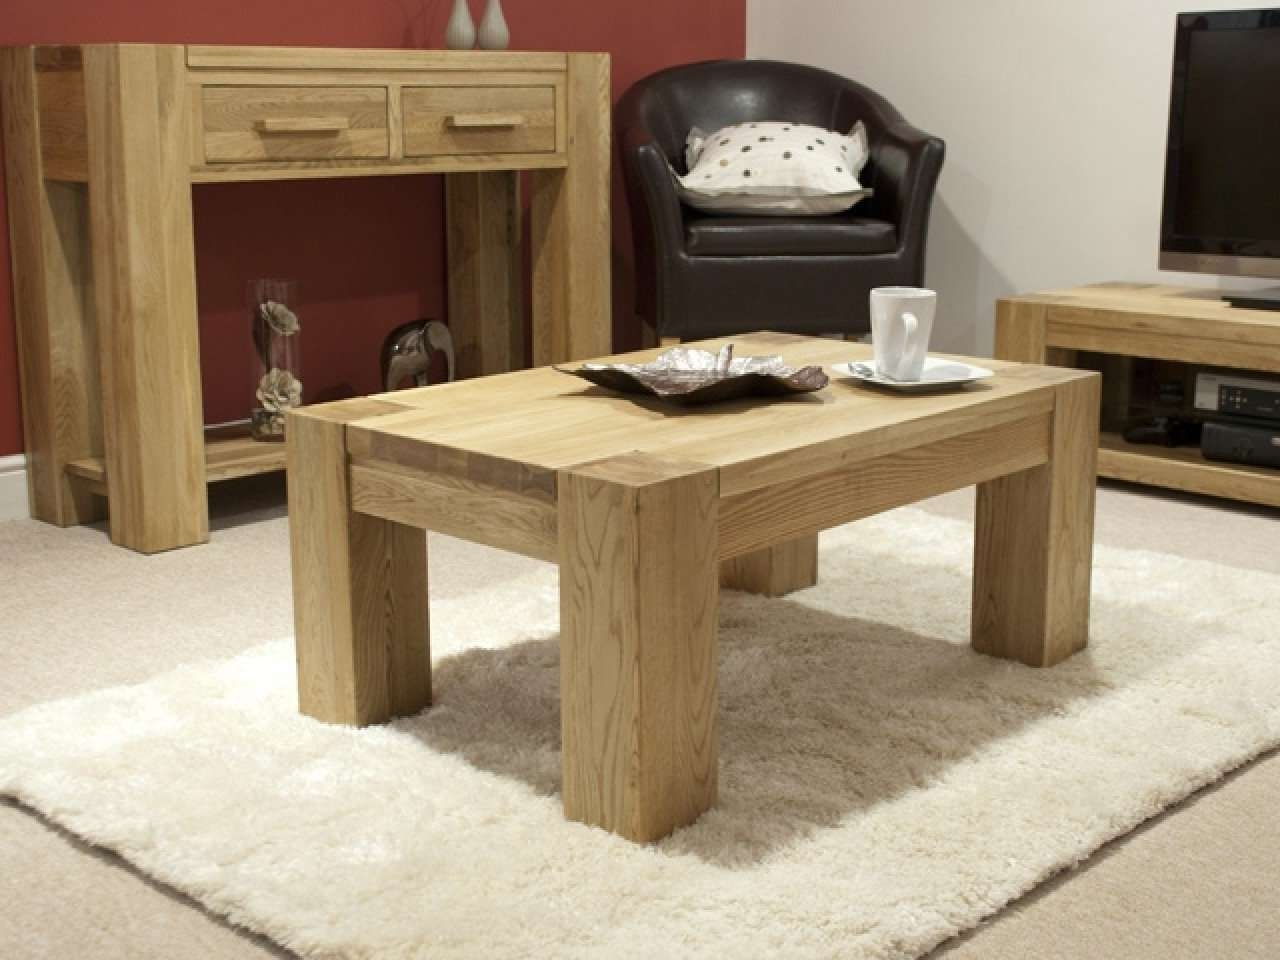 Oak Coffee Tables Trend Small Oak Coffee Table Oak City Intended Inside Trendy Small Oak Coffee Tables (View 16 of 20)